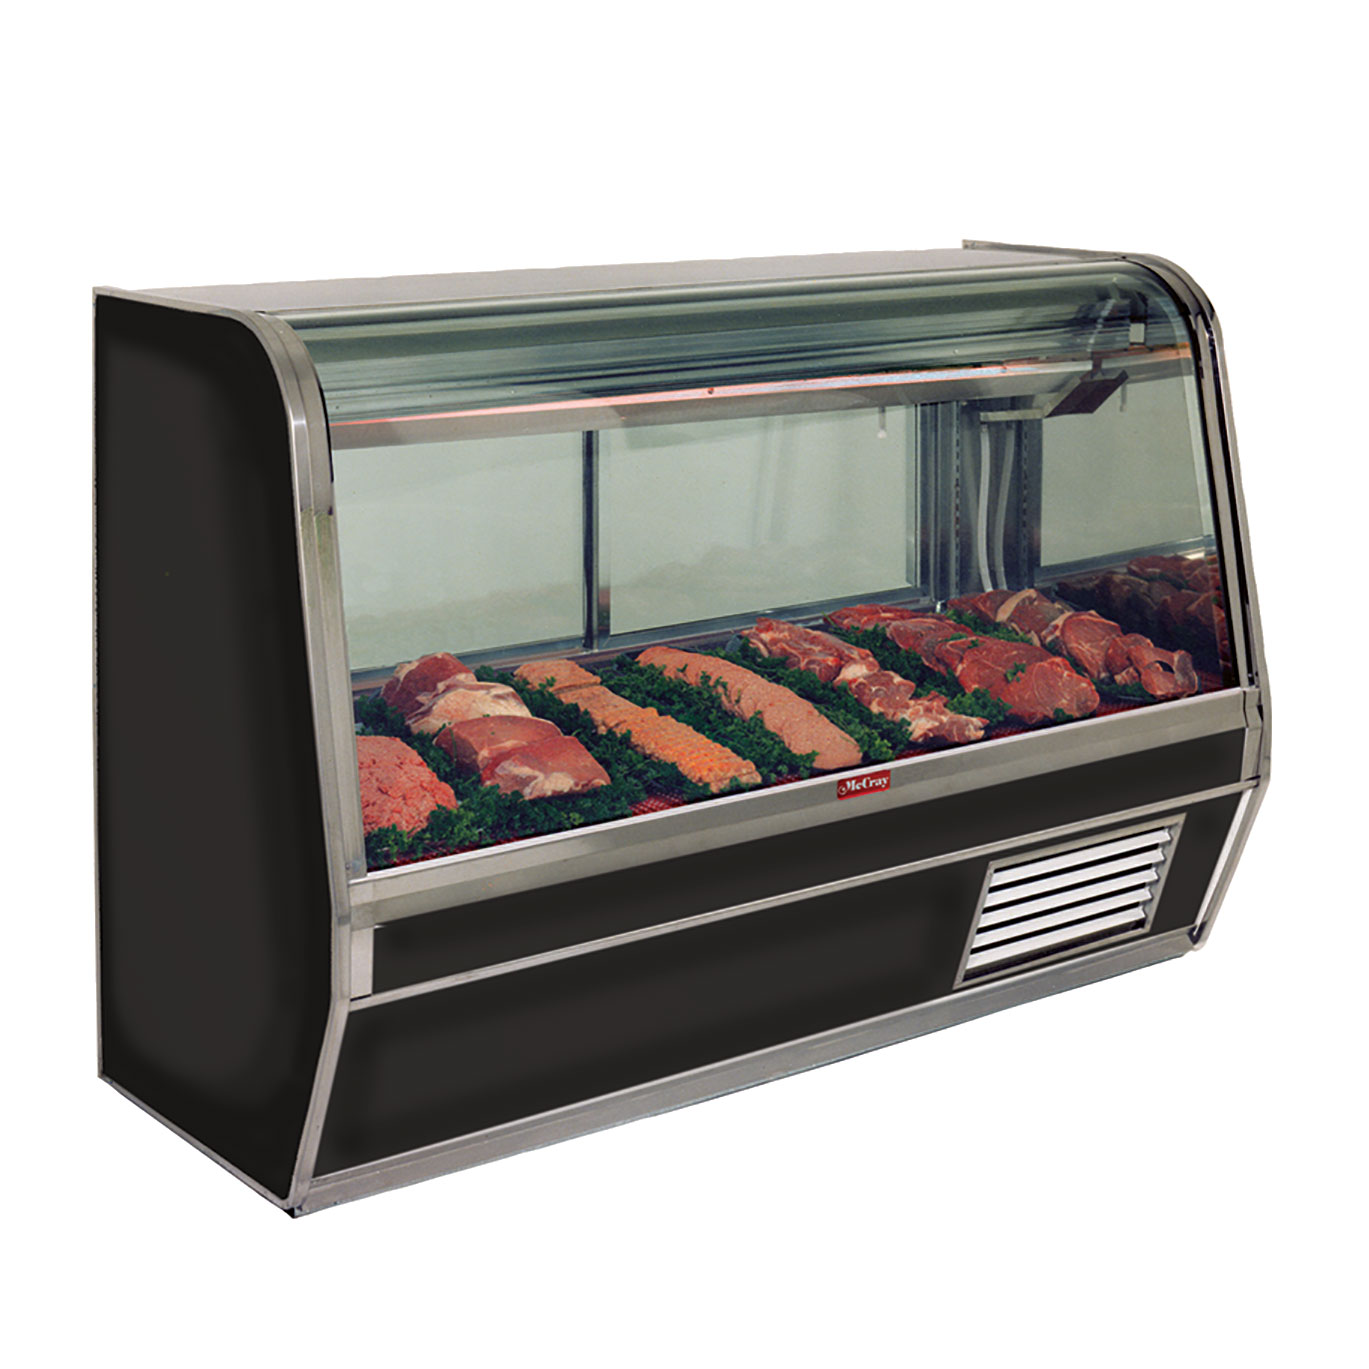 Howard-McCray SC-CMS32E-4C-BE-LED display case, red meat deli